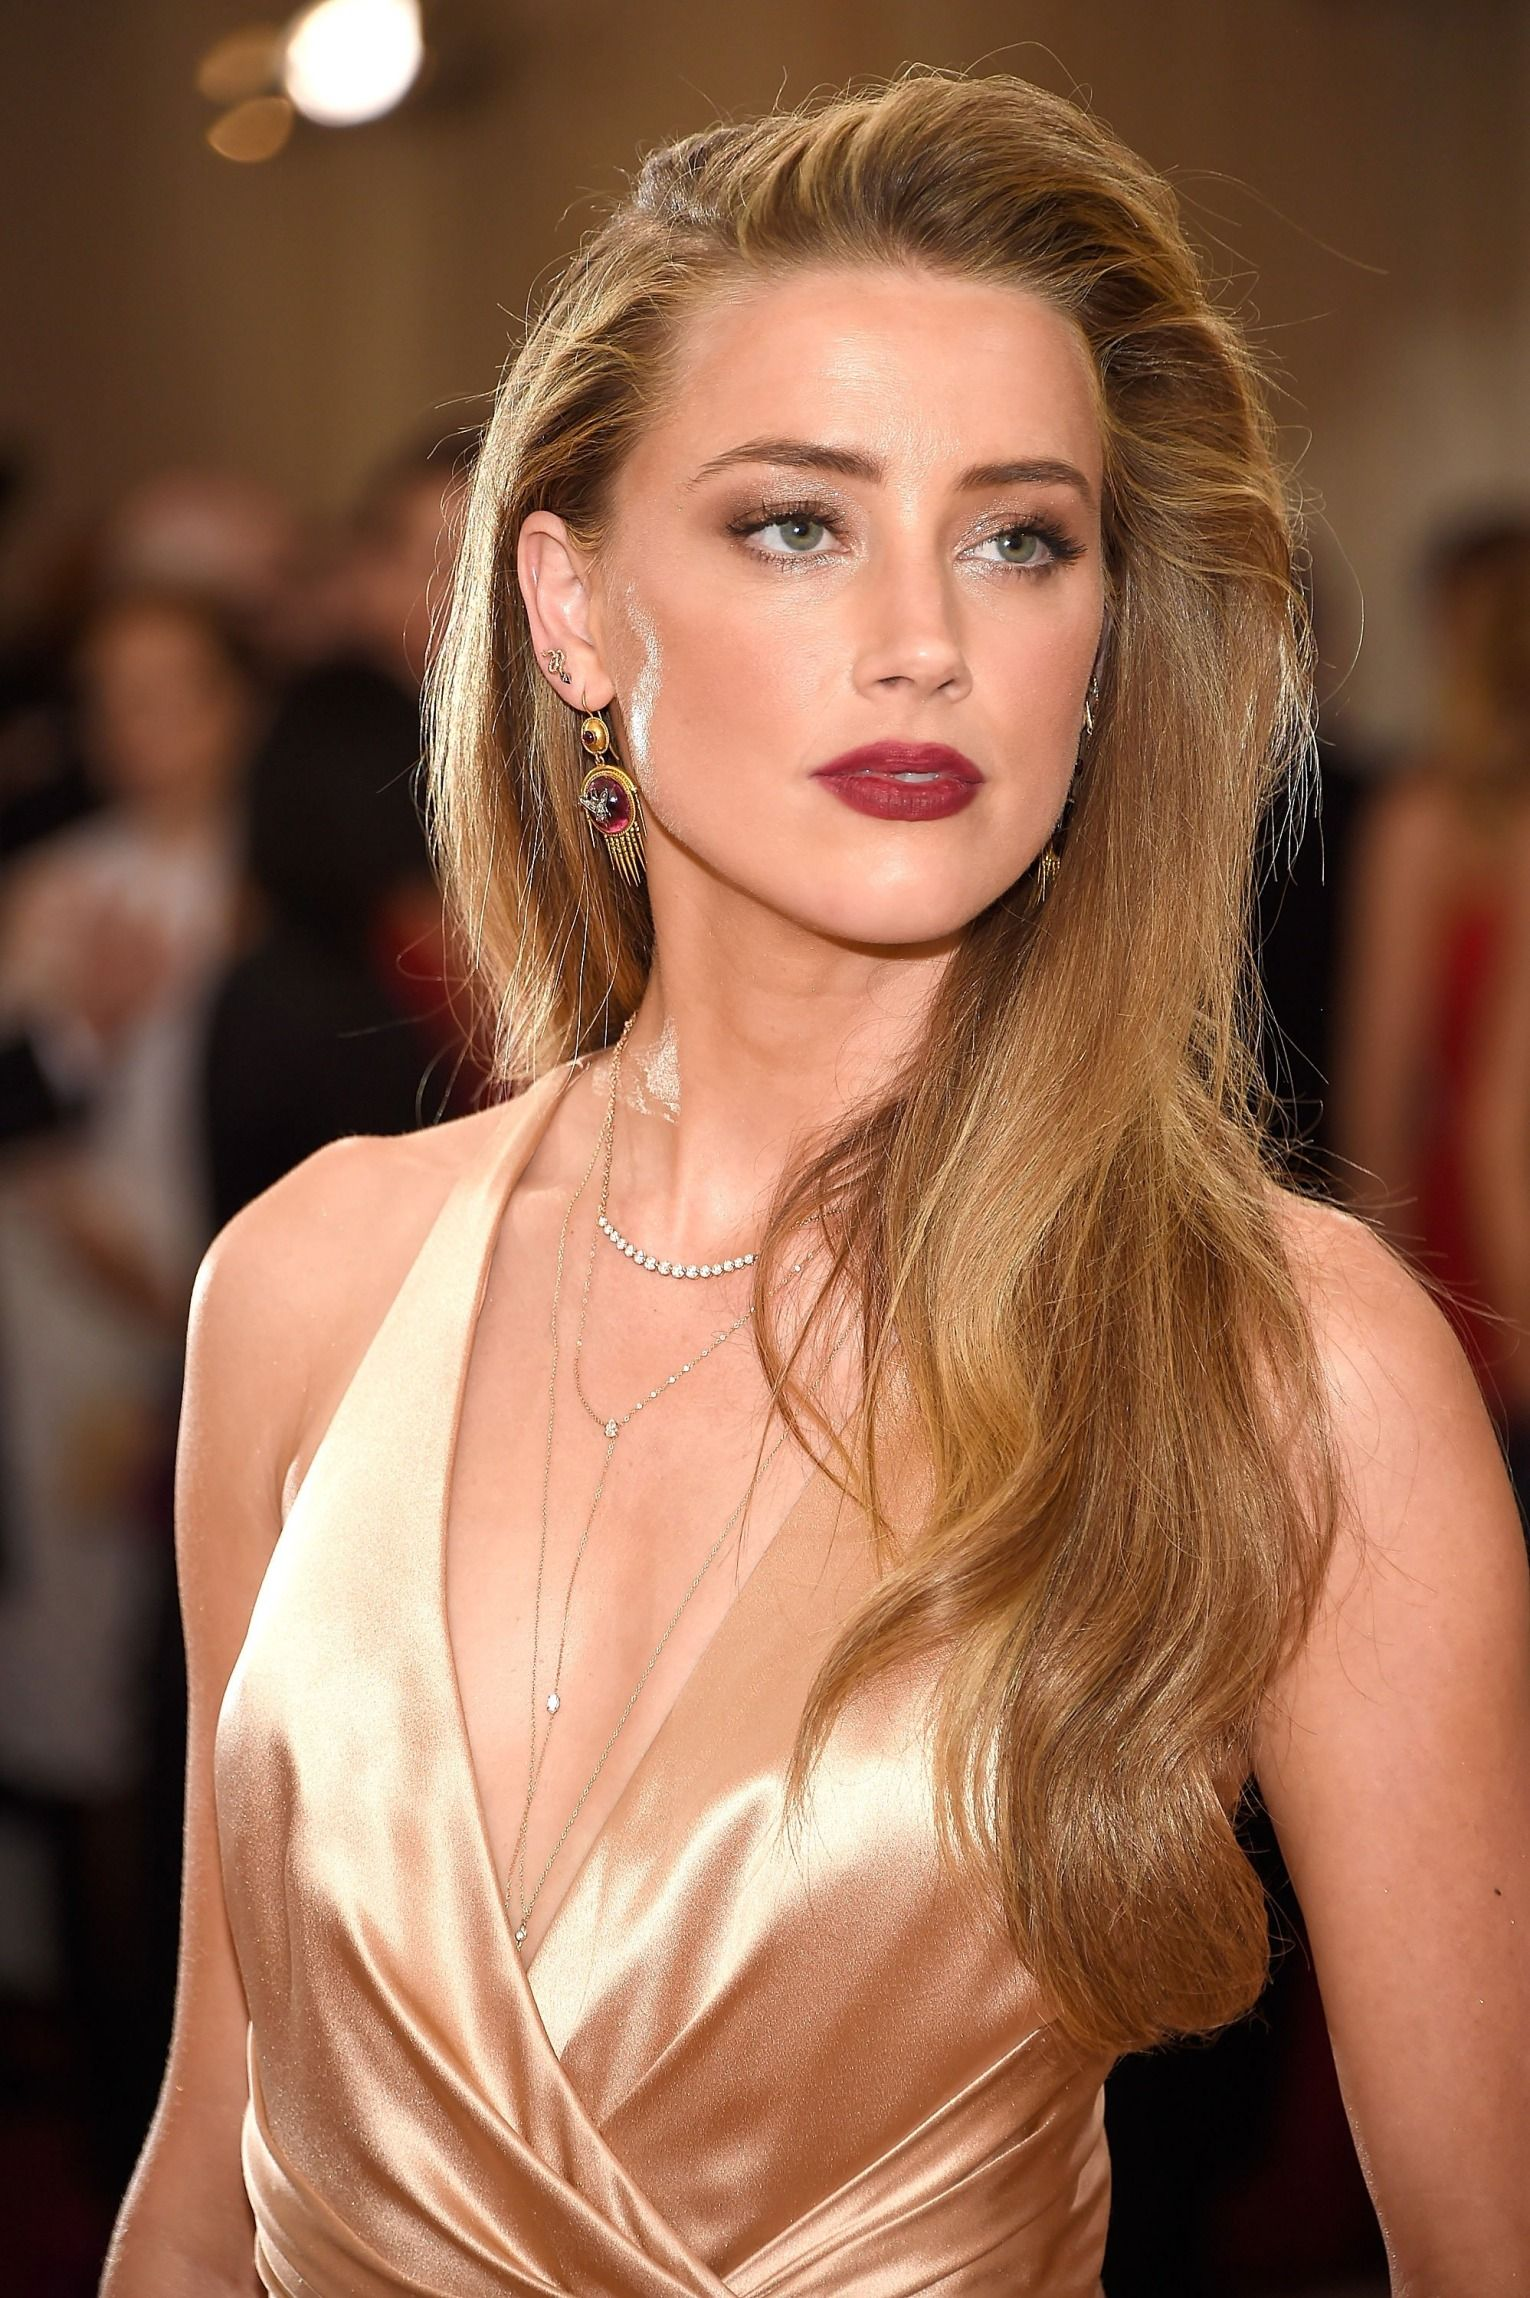 Amber Heard on Party